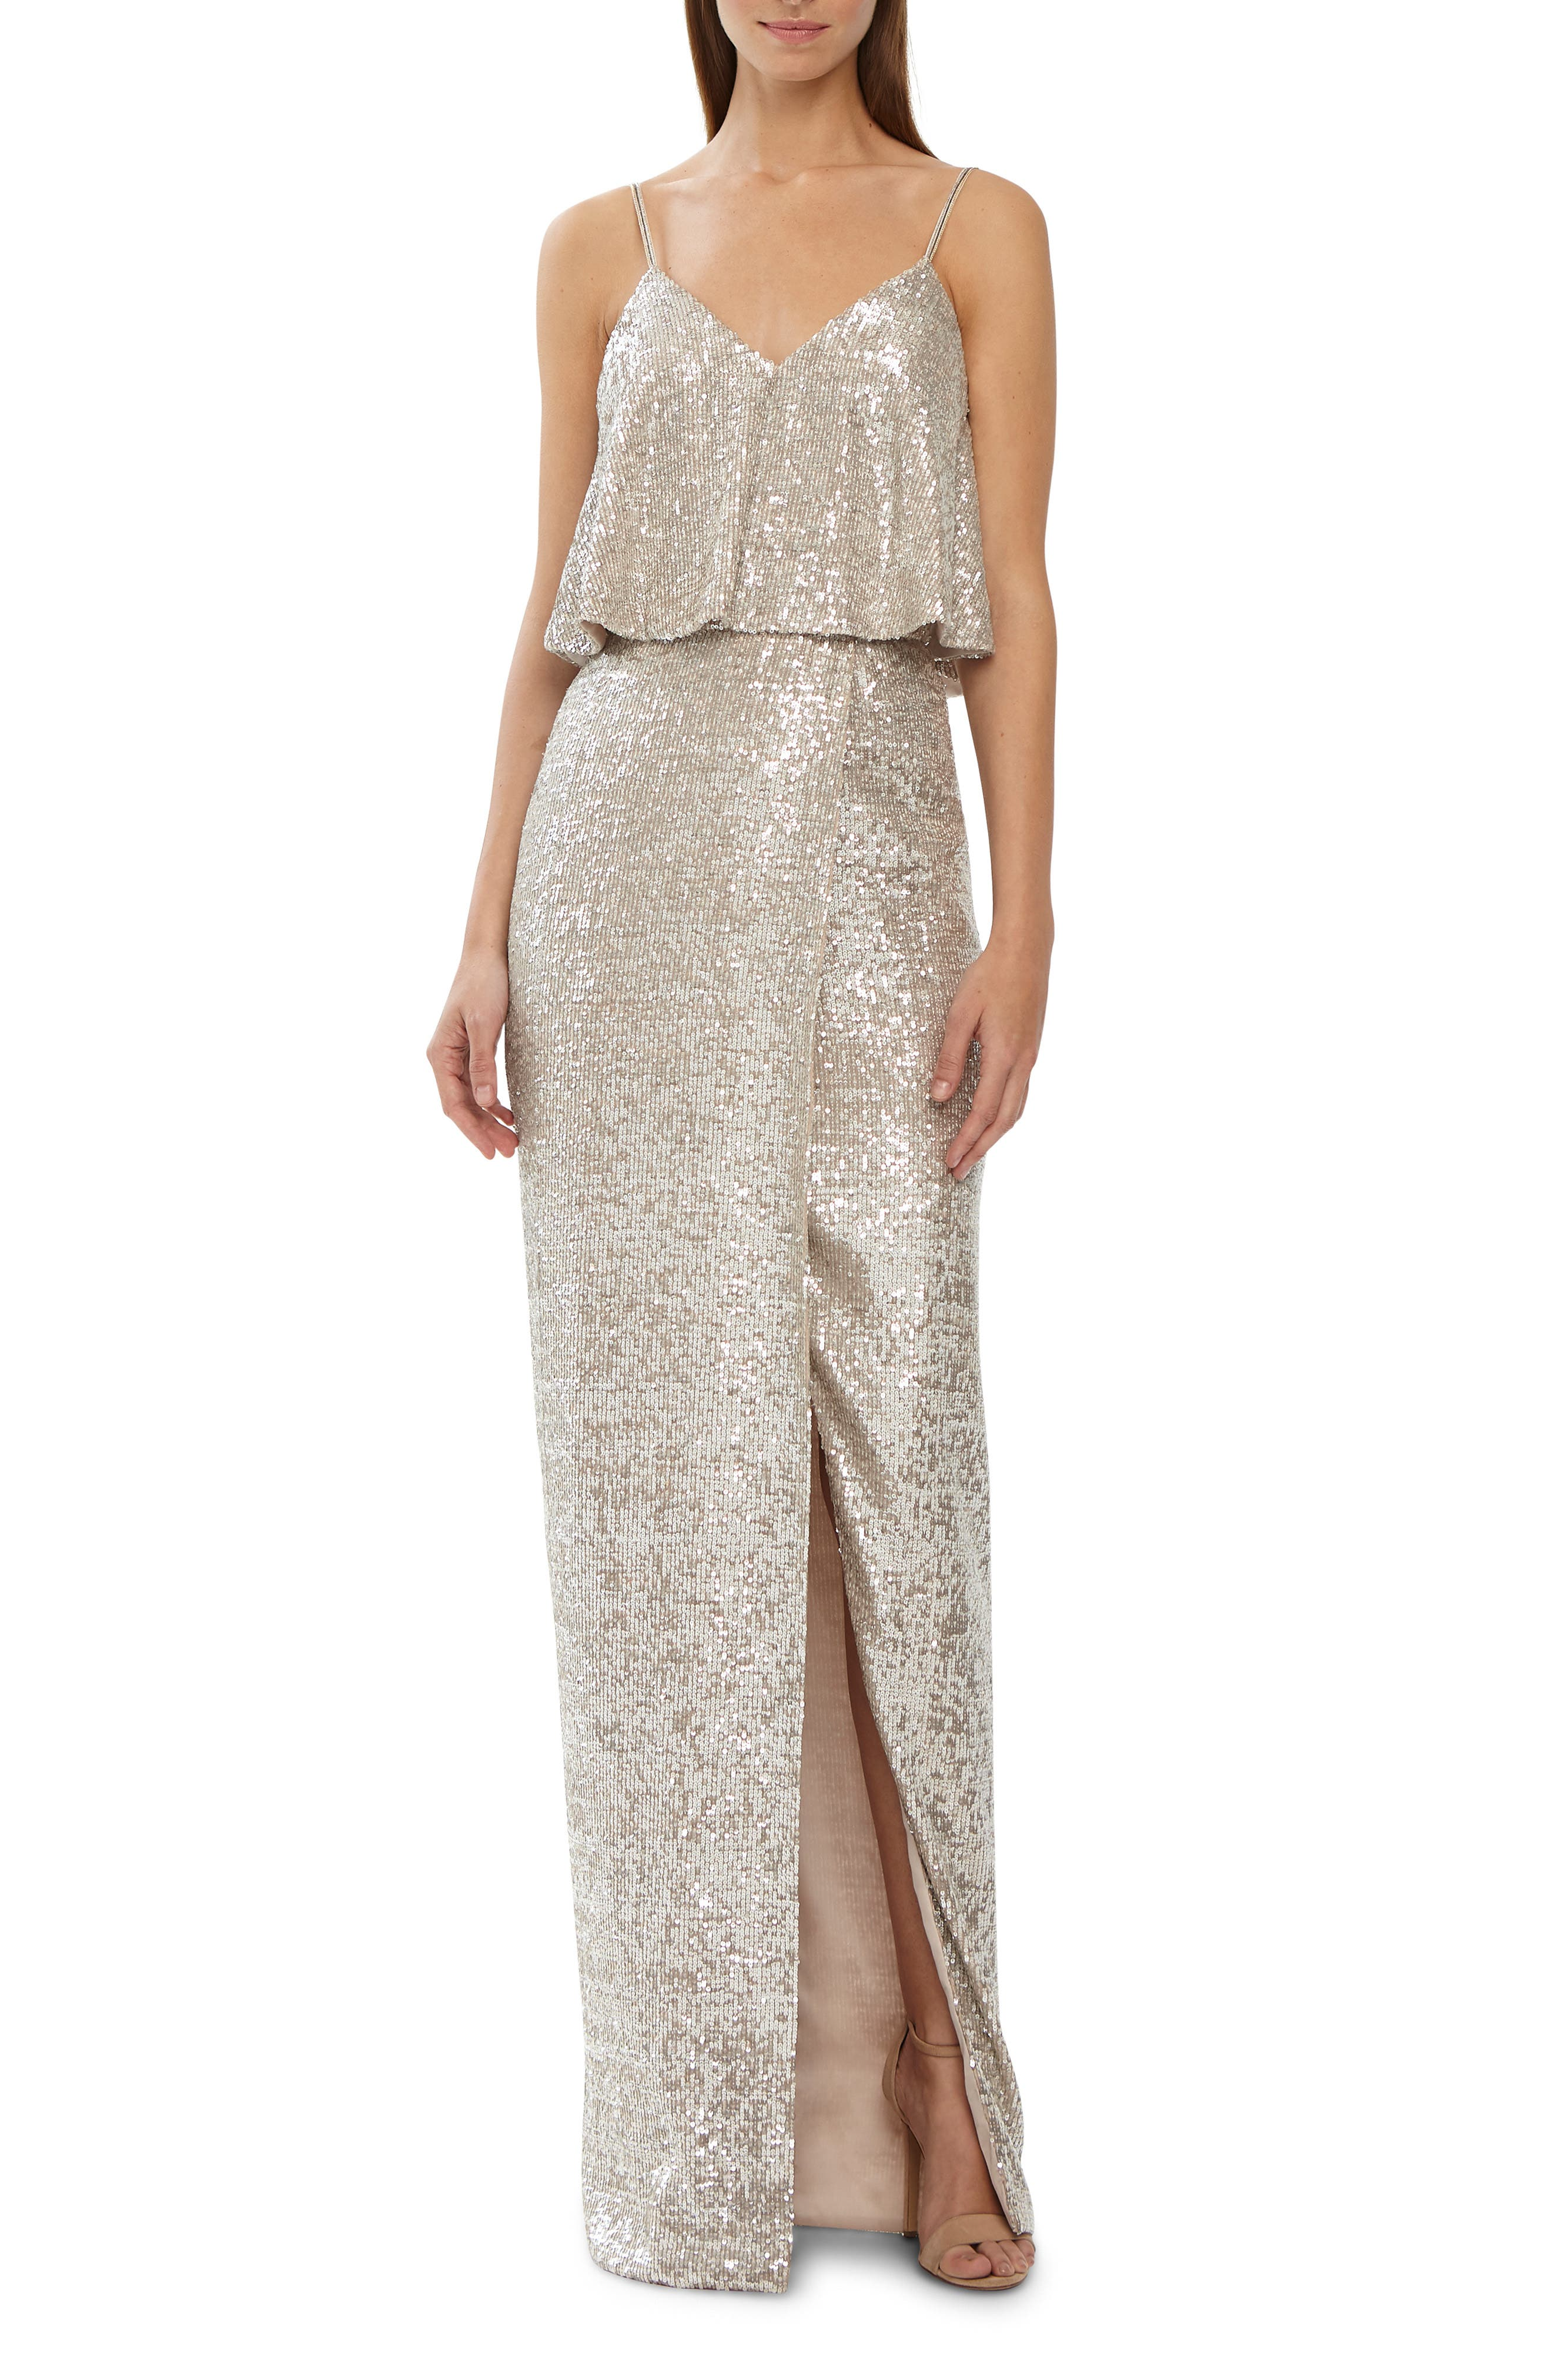 Ml Monique Lhuillier Sequins Front Slit Gown, Metallic